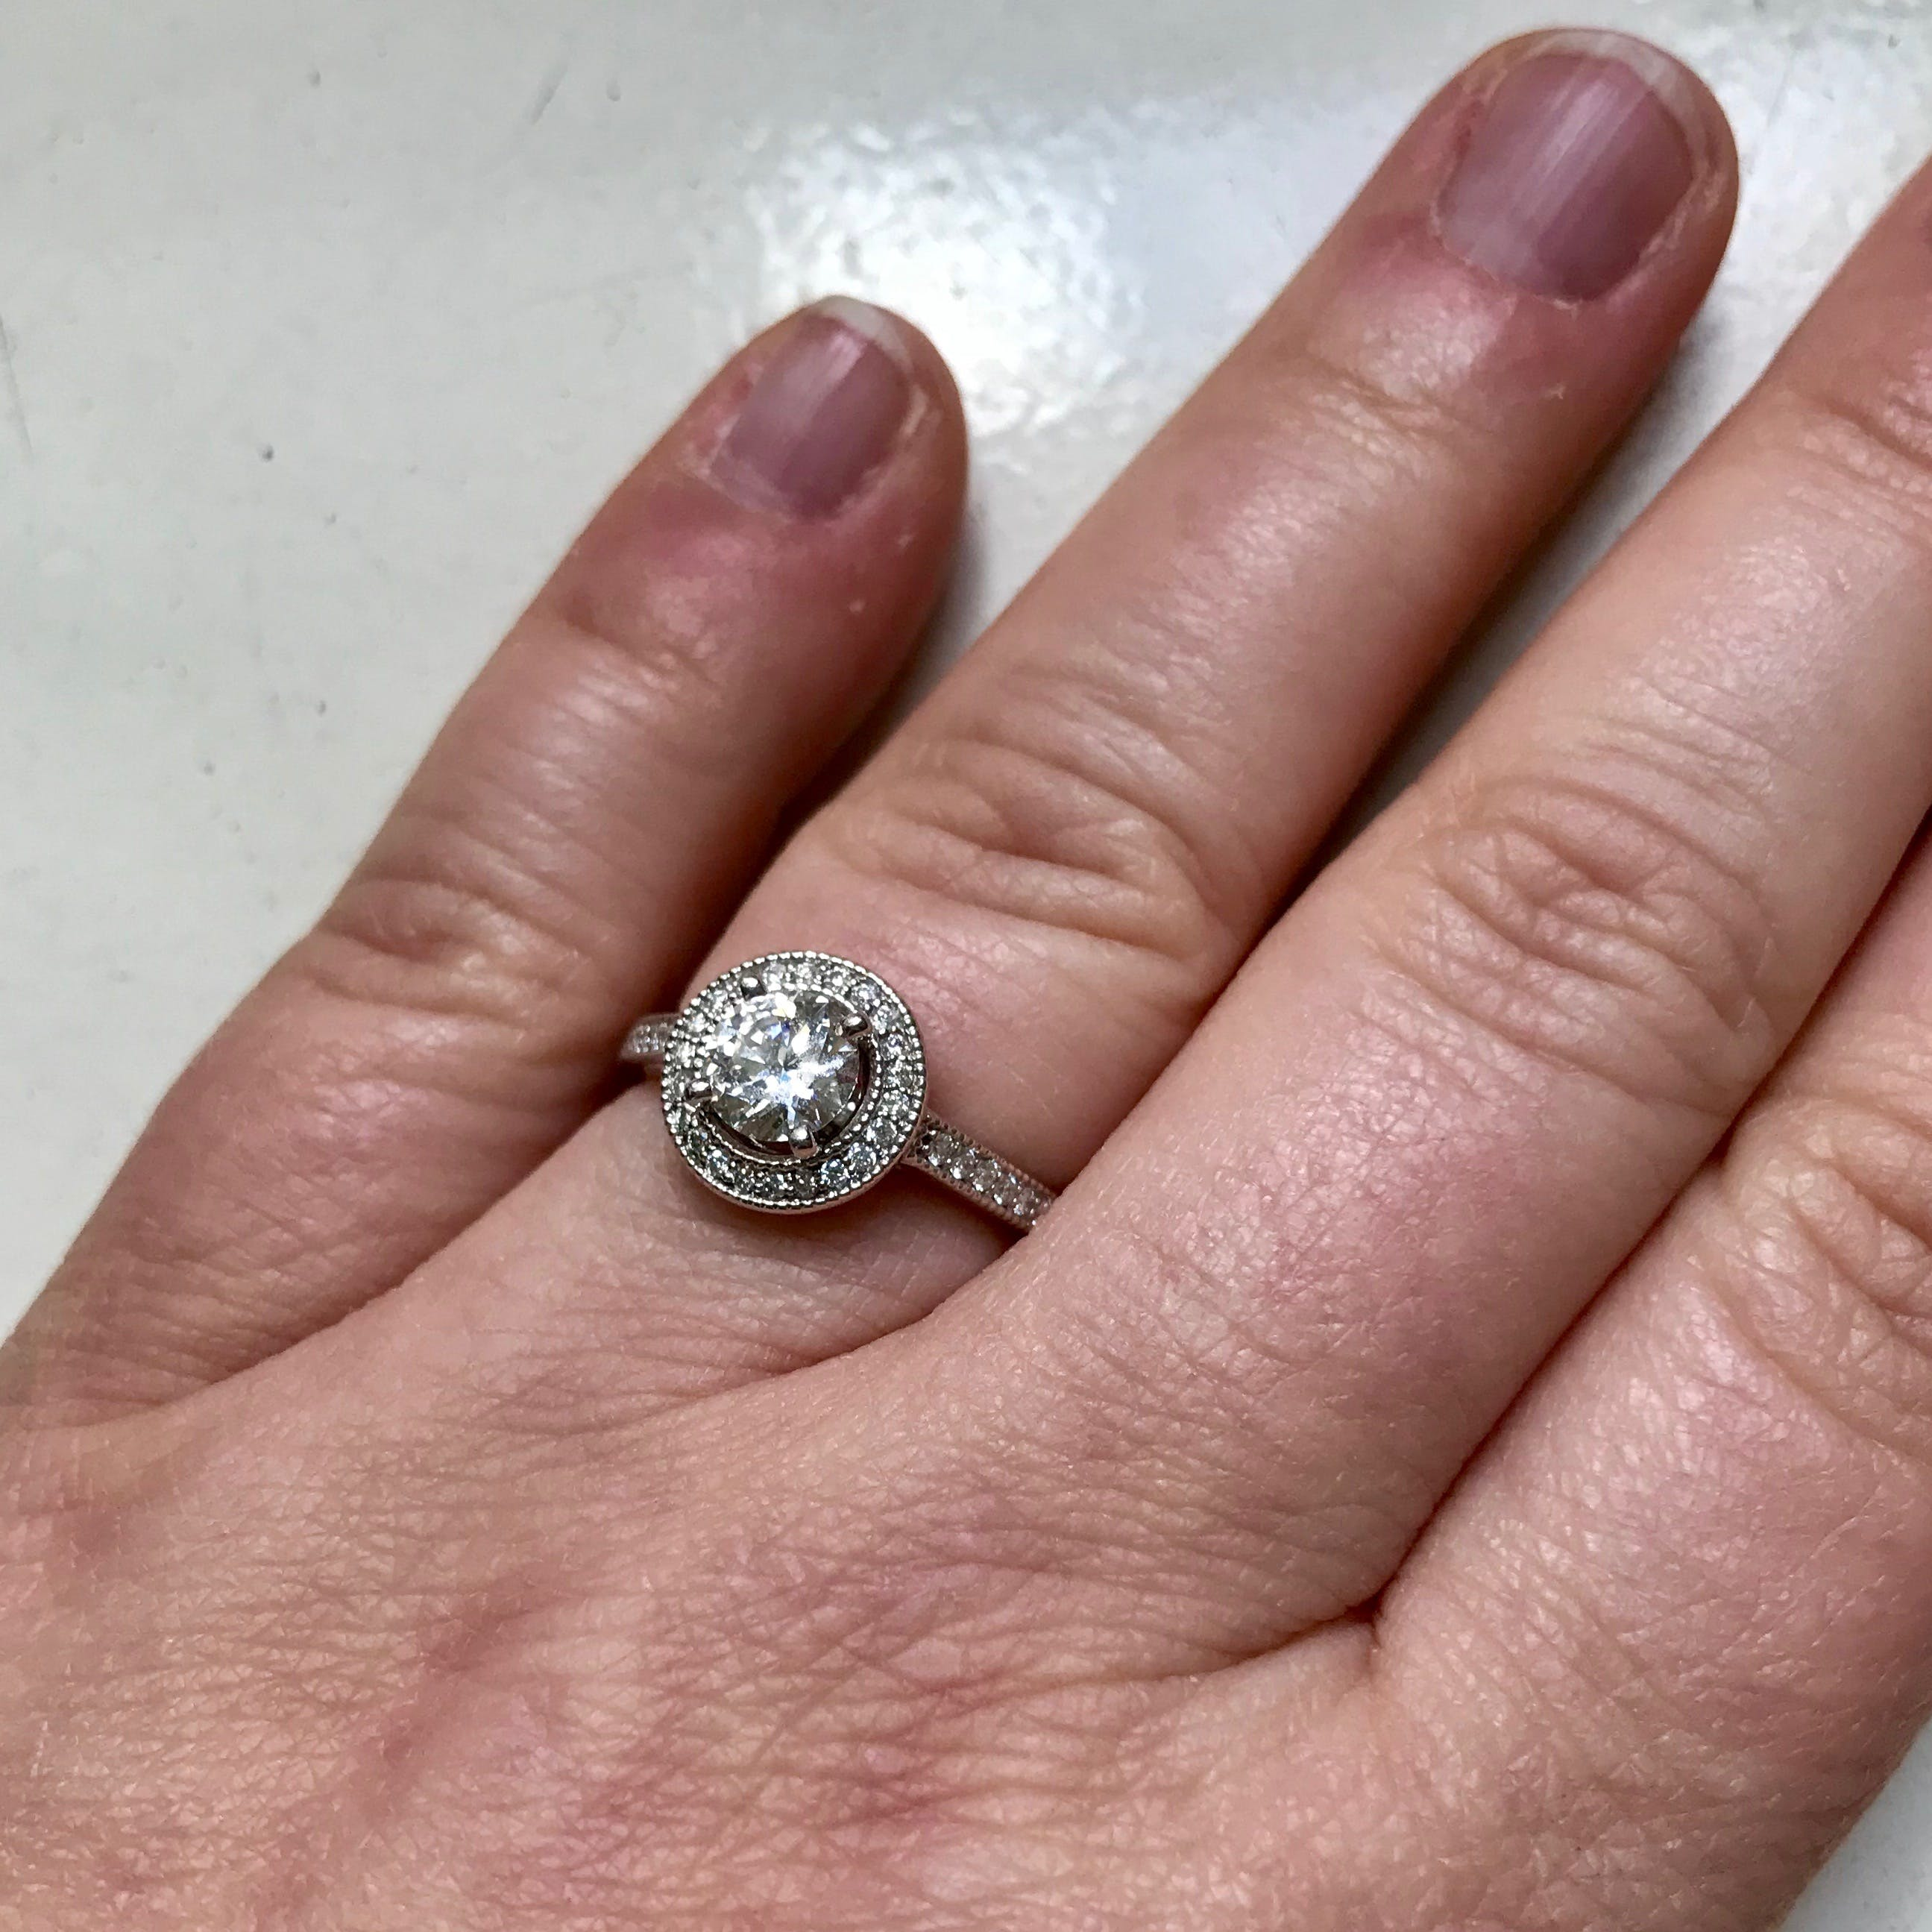 engagement metal you can vs and rings size full wedding wear ring mixed bands band platinum durability stack together with to gold of white rose next